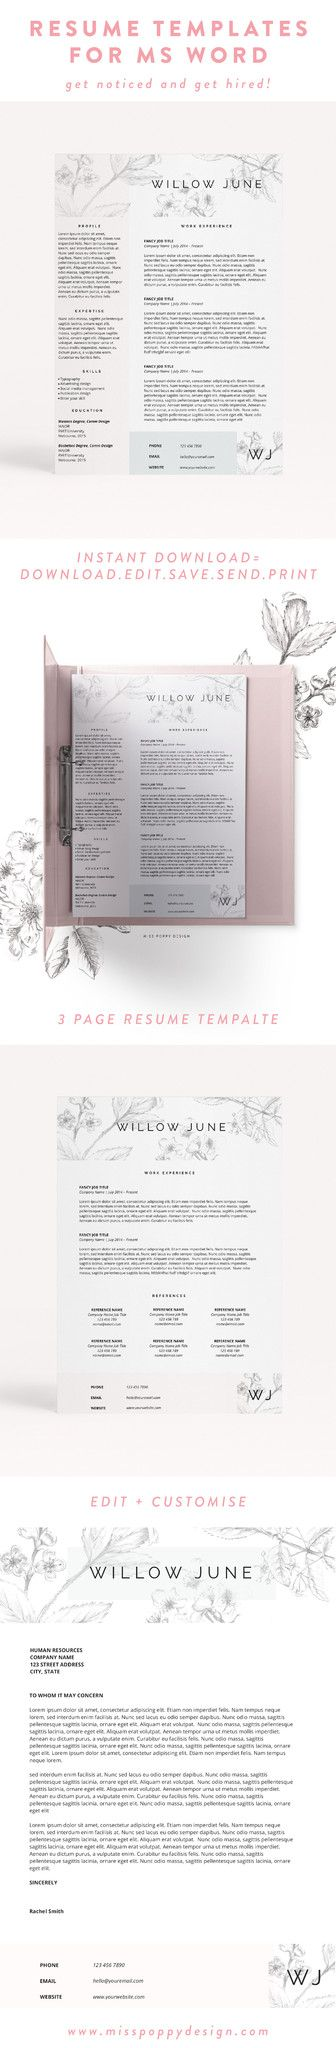 Modern Creative Resume Template | CV Template | MS Word | Instant Download | Floral Resume | Chic Resume | Professional Resume Design